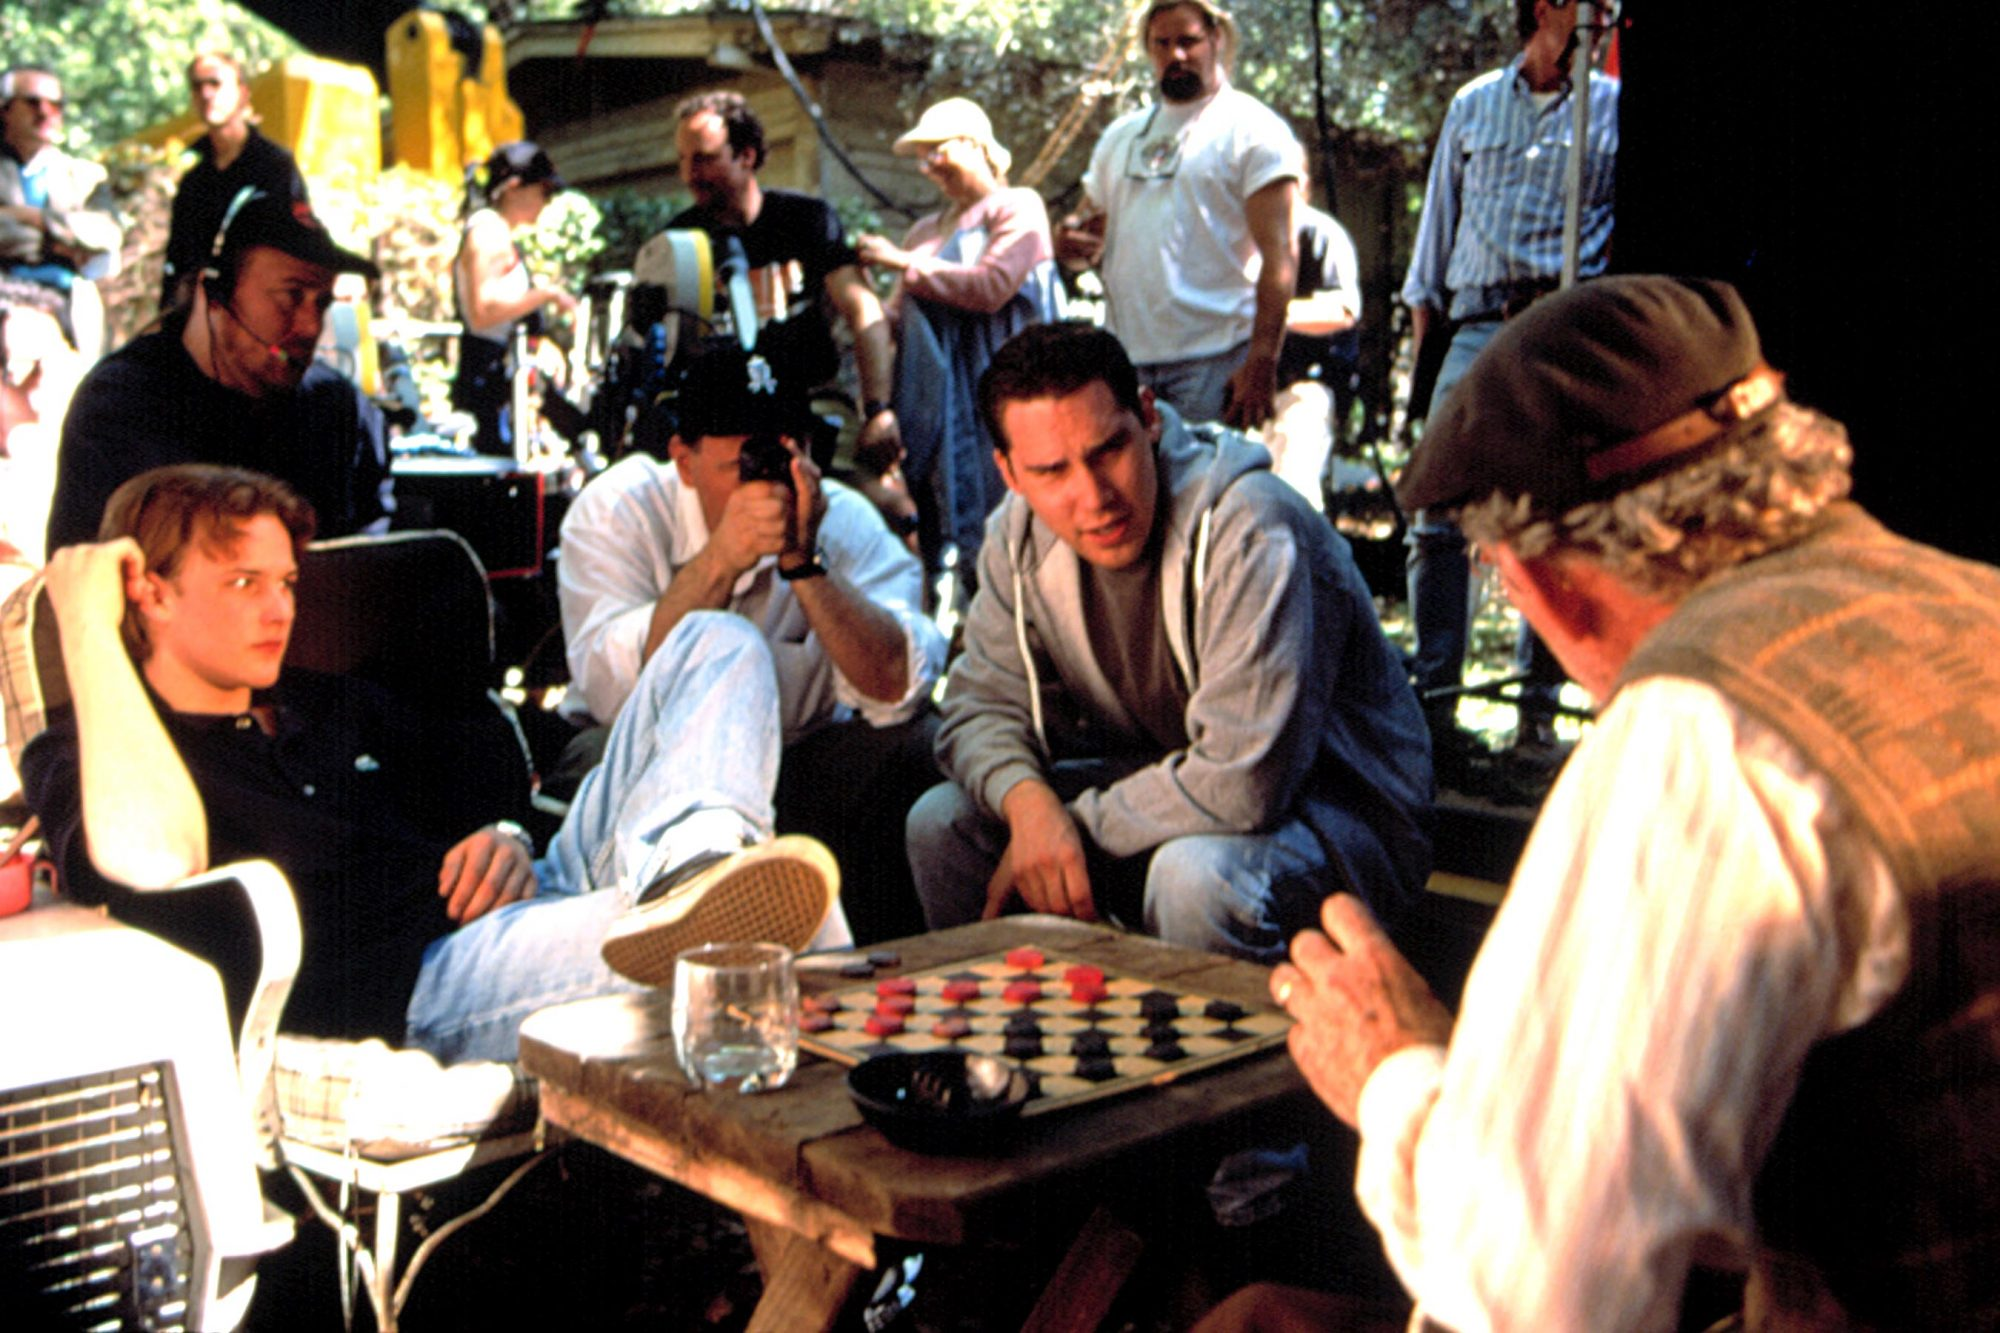 APT PUPIL, Brad Renfro, director Bryan Singer, Ian McKellen on the set, 1998